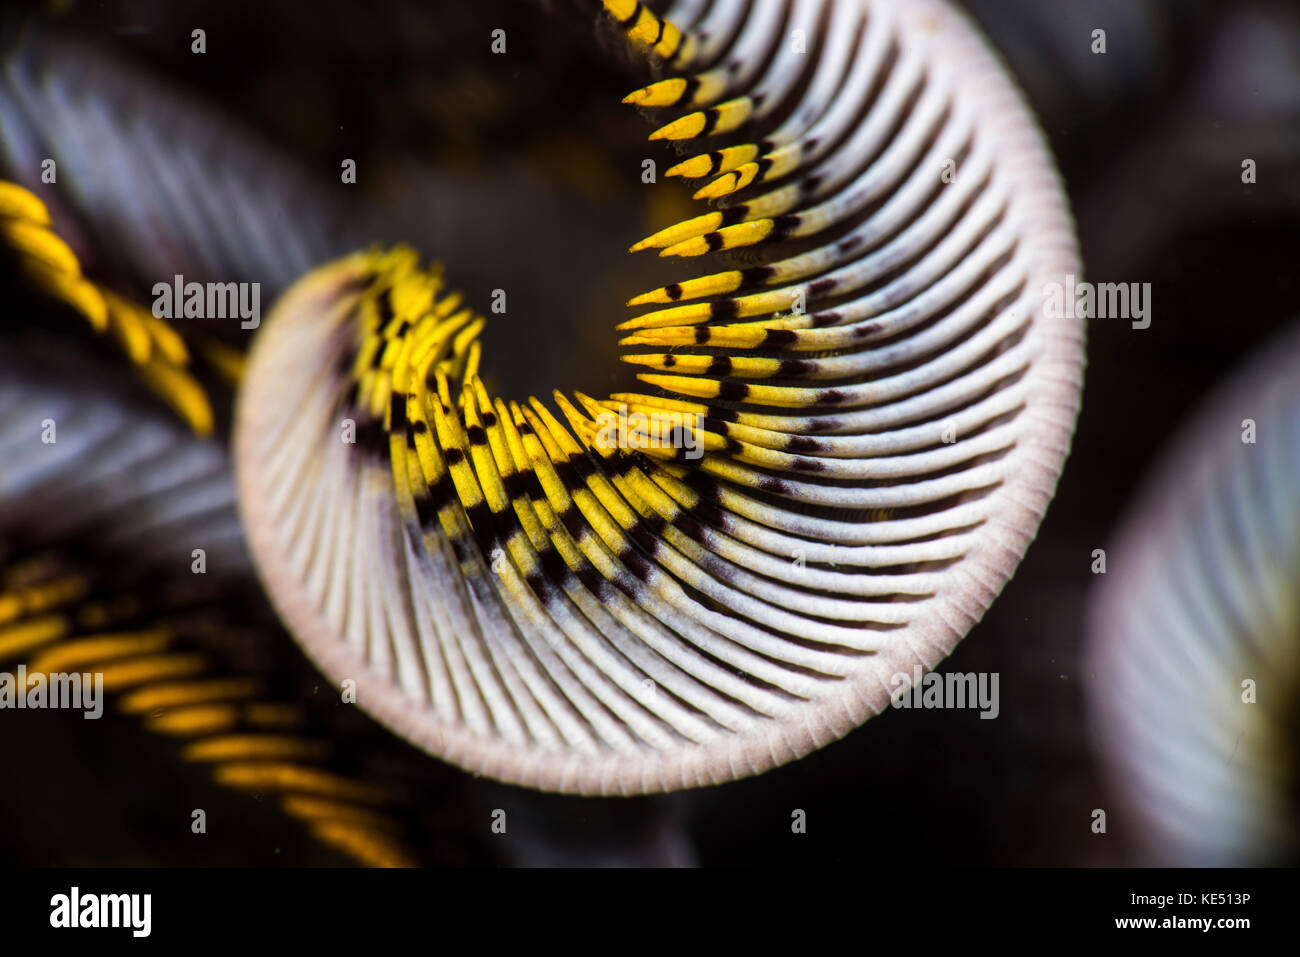 The curled arm of a crinoid, Anilao, Philippines. Stock Photo